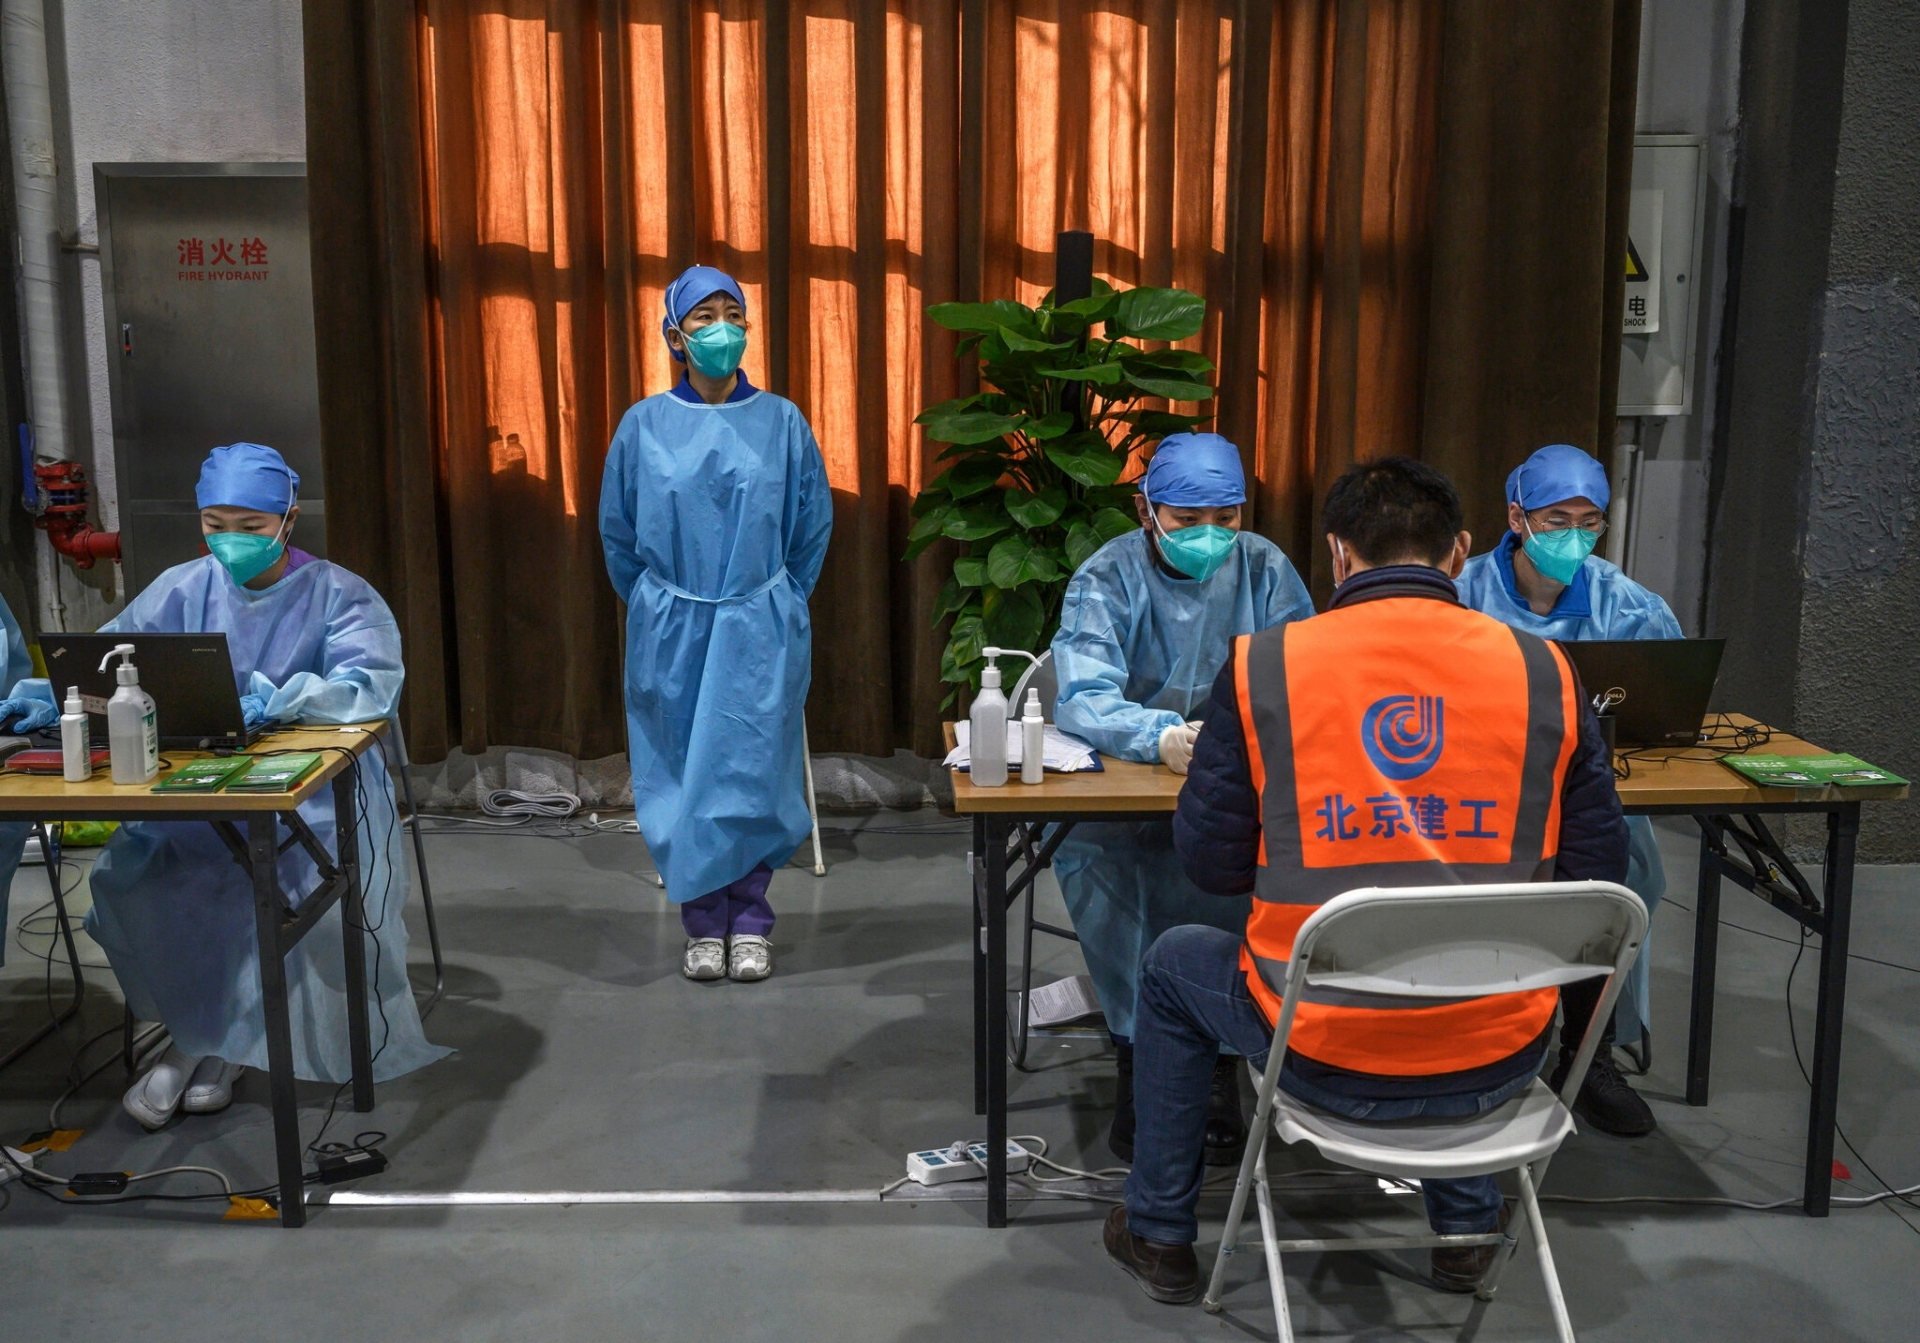 A vaccination center in Beijing last month (Photo: Getty Images)